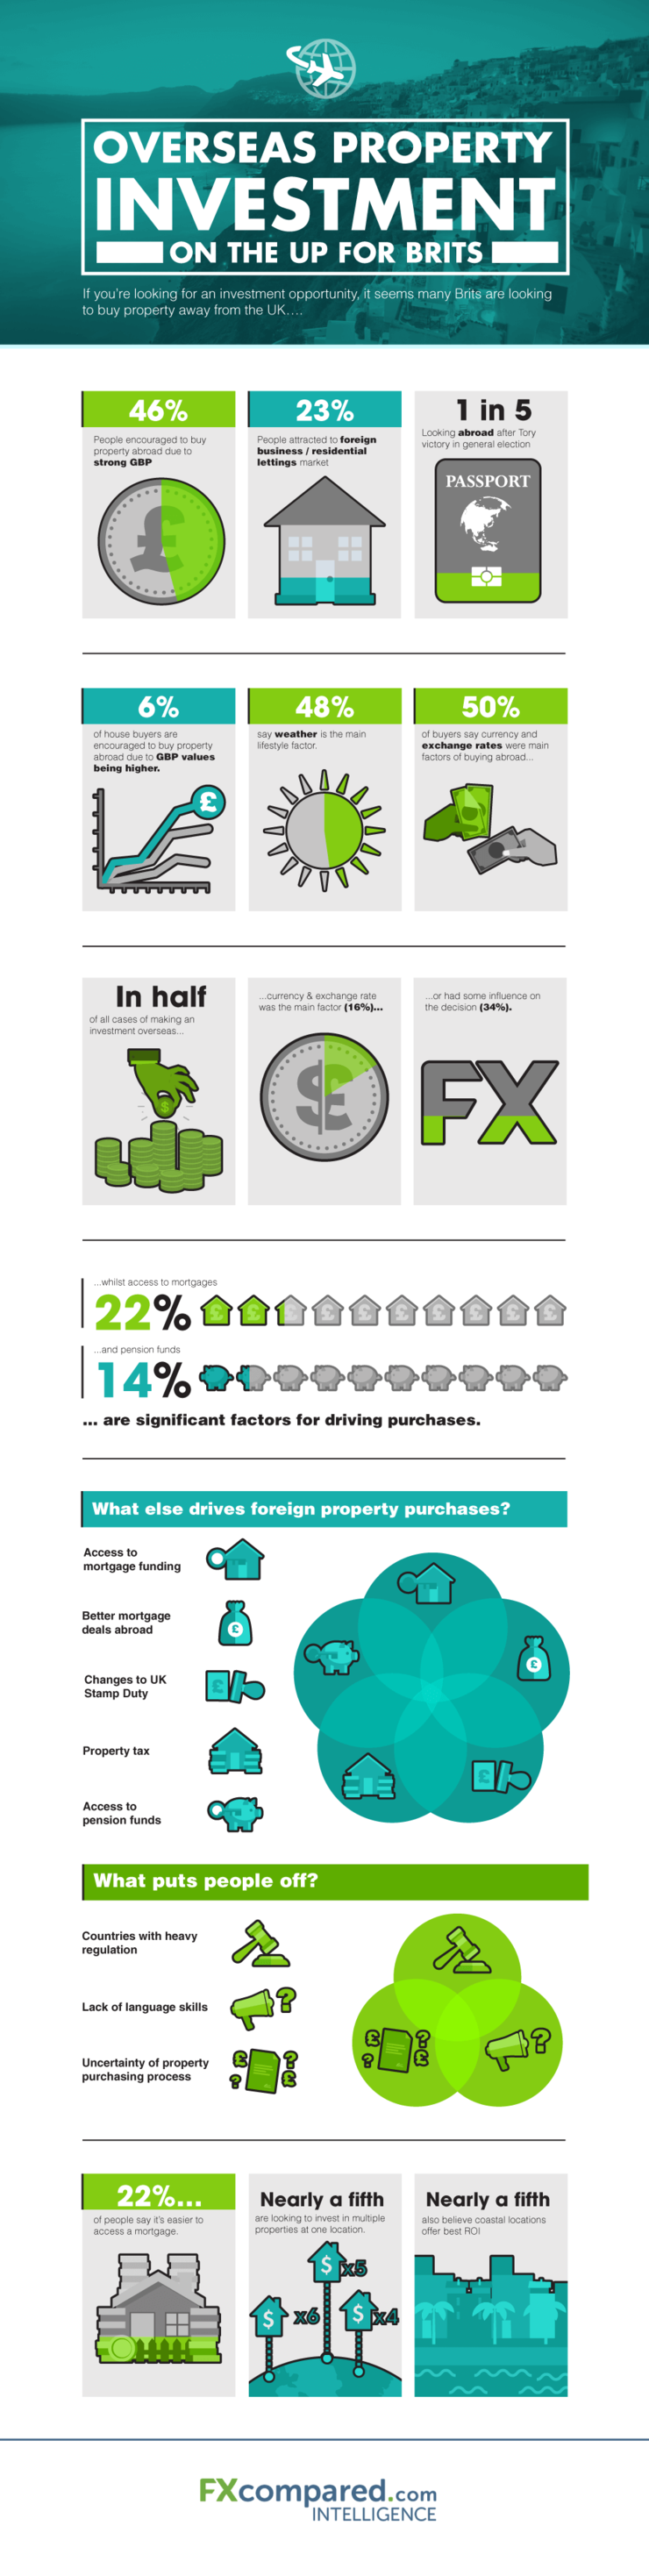 Overseas Property Purchases in the UK Infographic